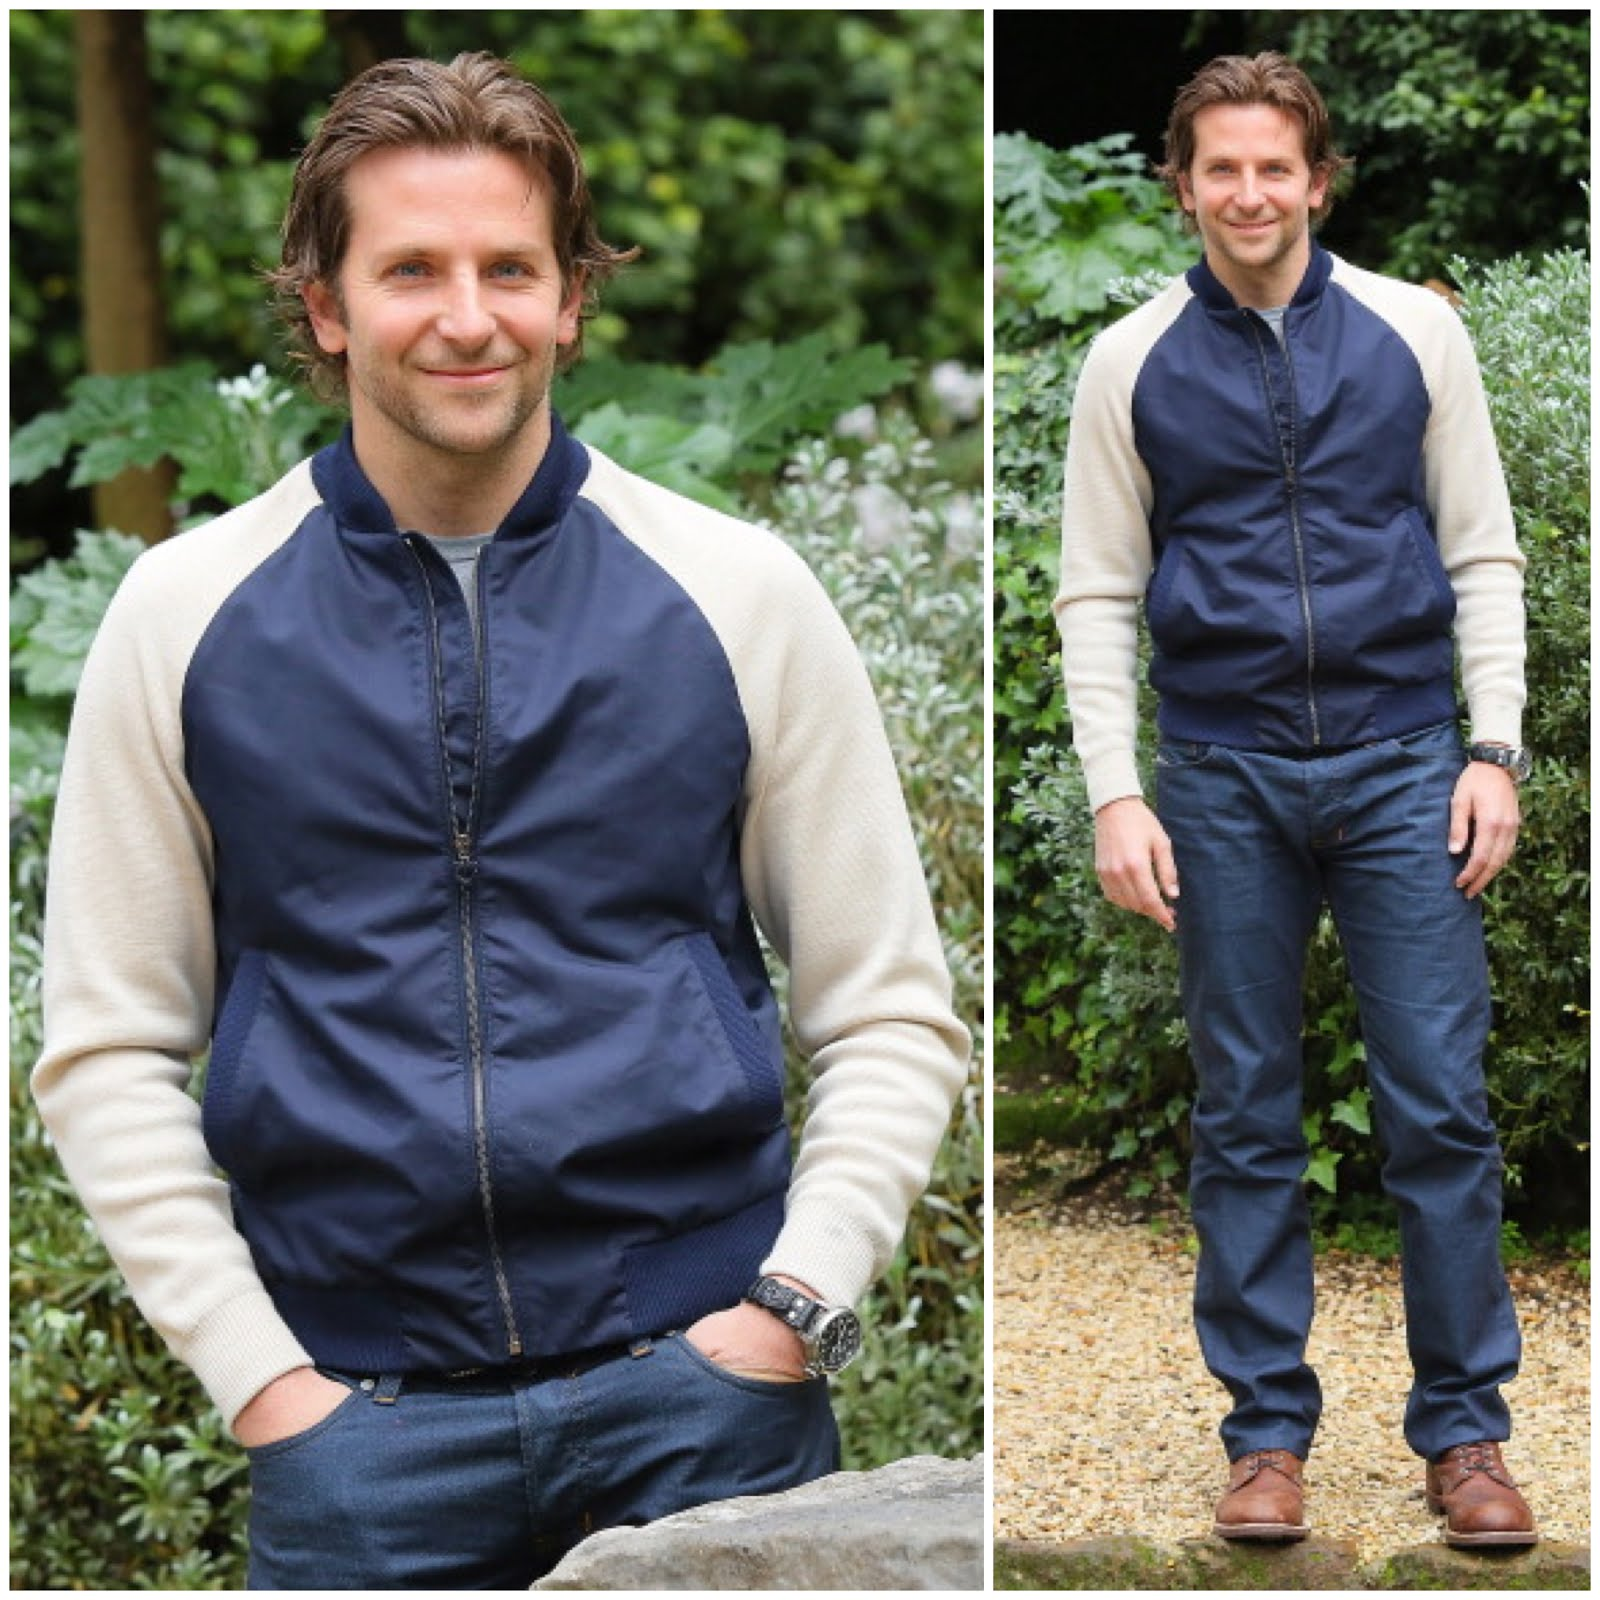 00O00 Menswear Blog Bradley Cooper in Salvatore Ferragamo - 'Silver Linings Playbook' photocall, Rome